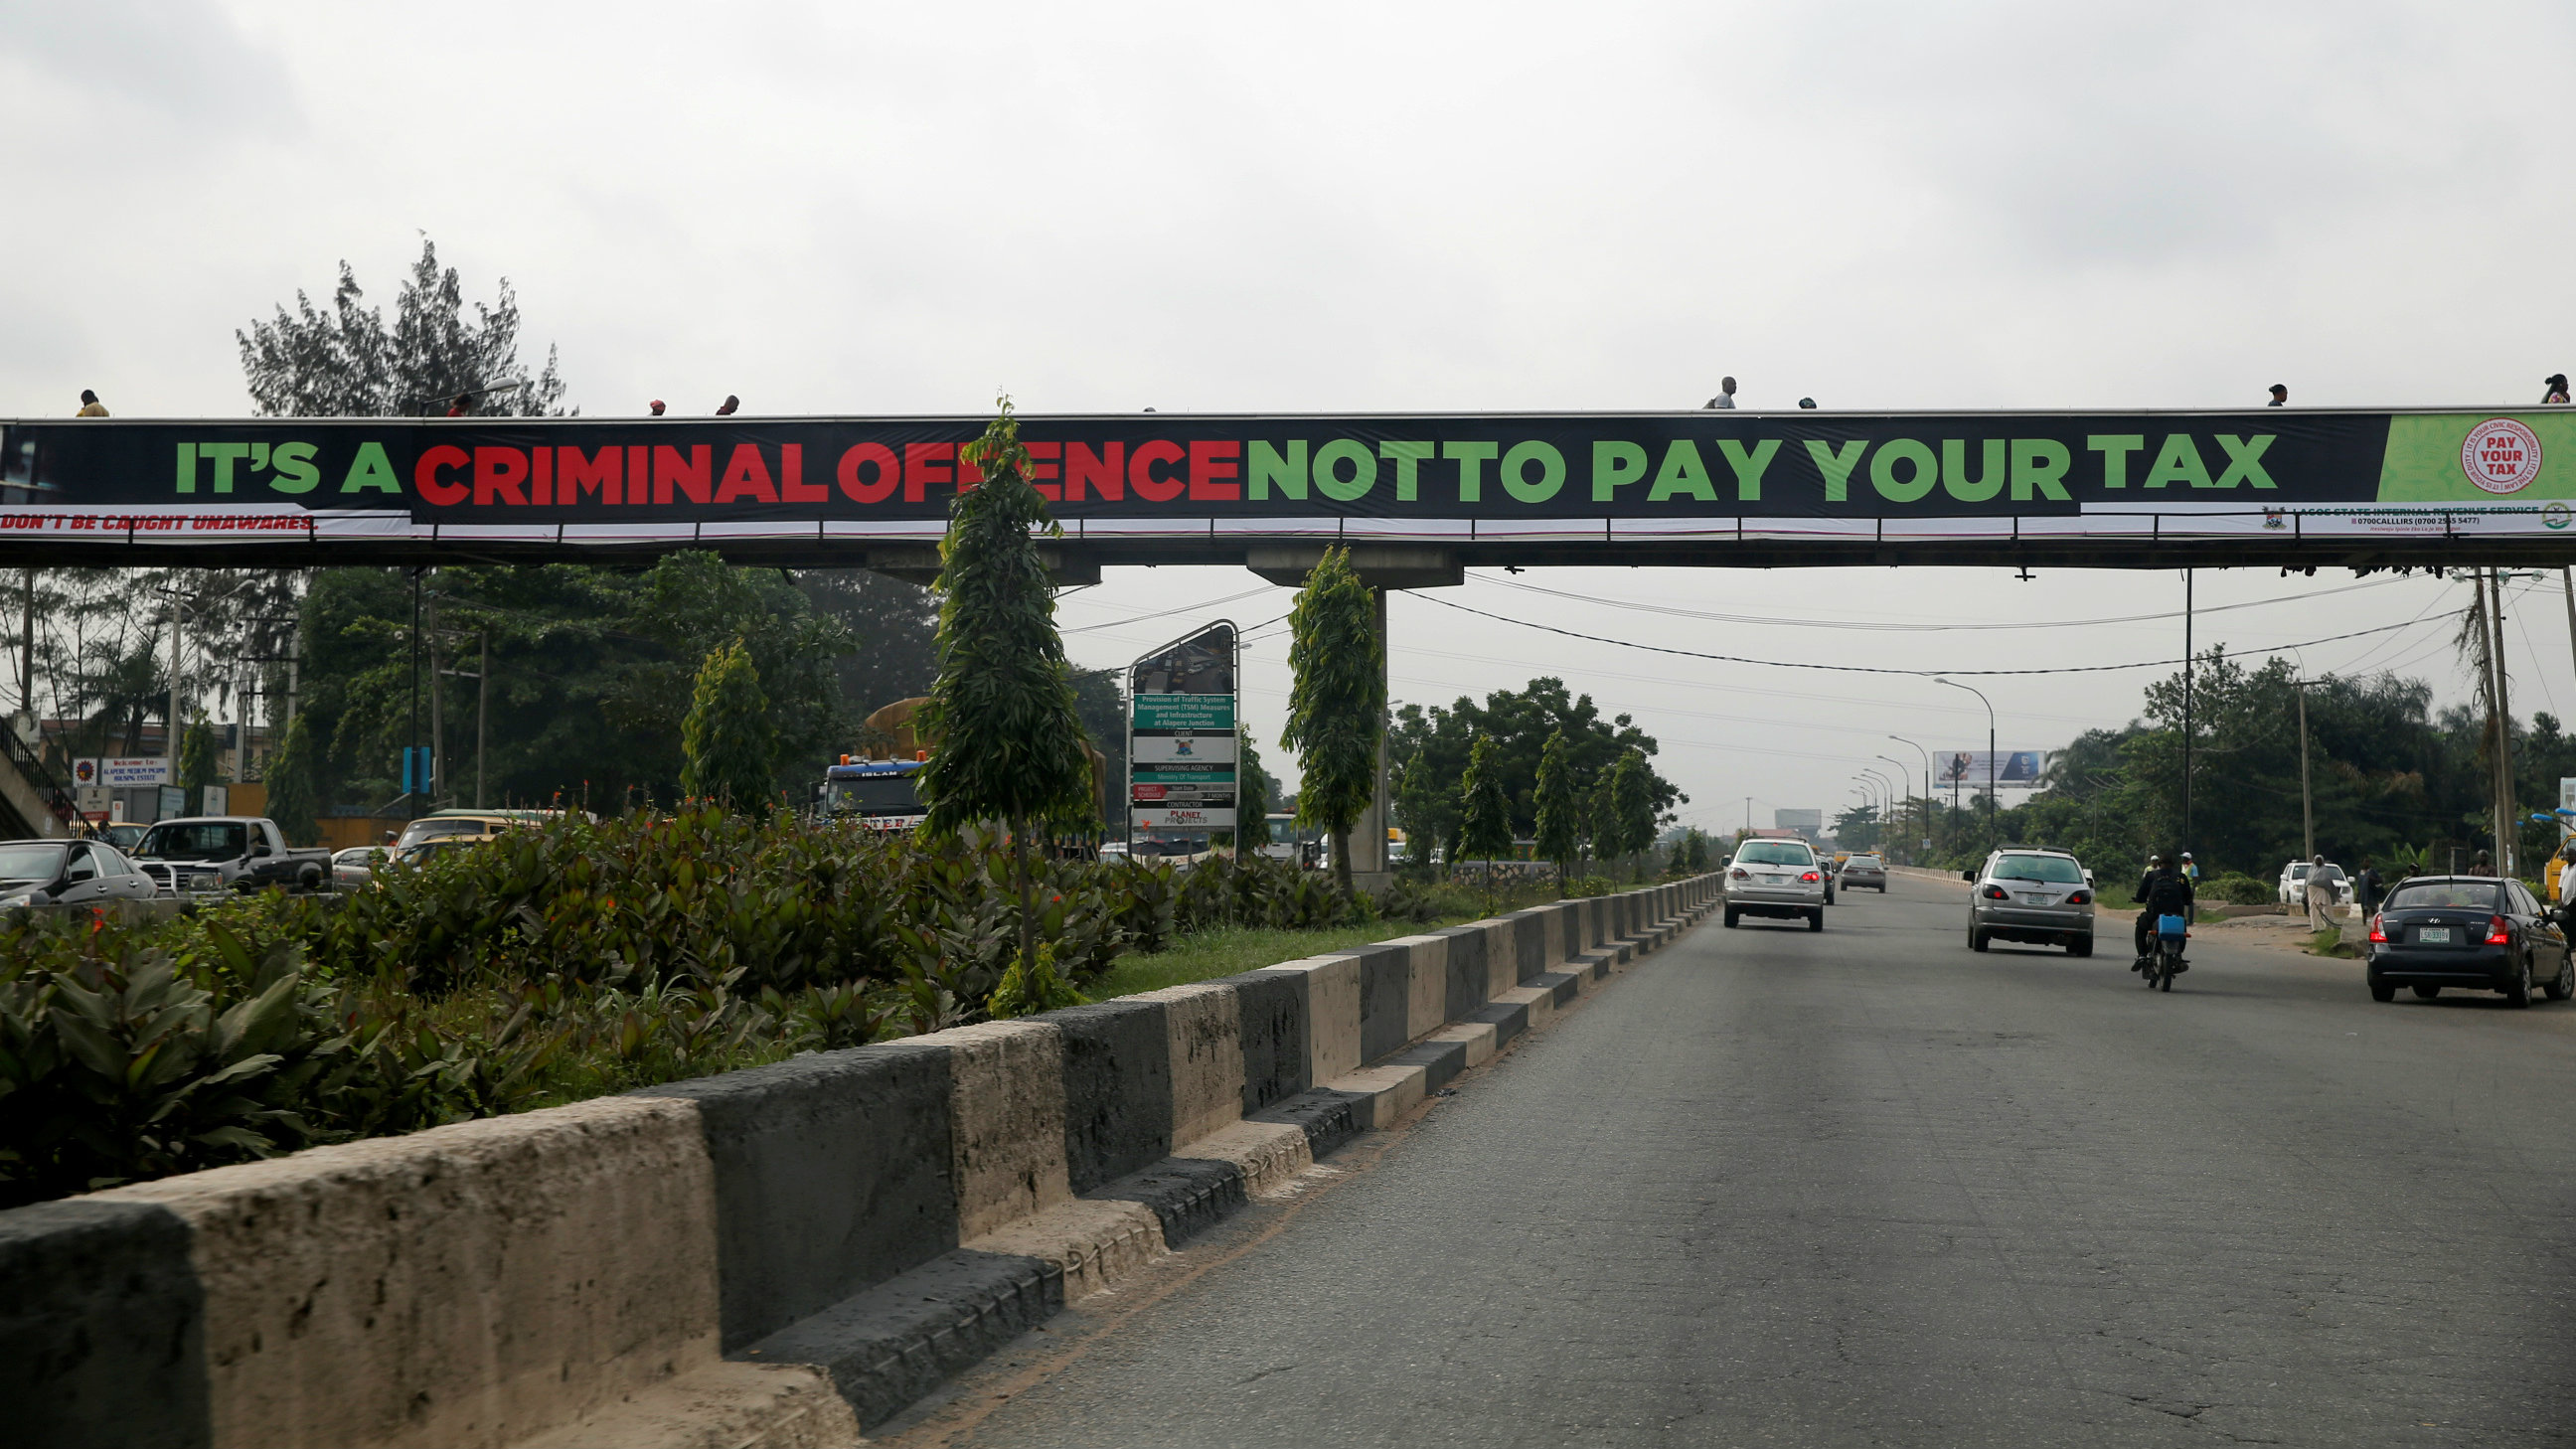 A banner campaigning for tax payment is seen hung on a pedestrian bridge across Lagos-Ibadan expressway in Nigeria's commercial capital Lagos July 22, 2016.